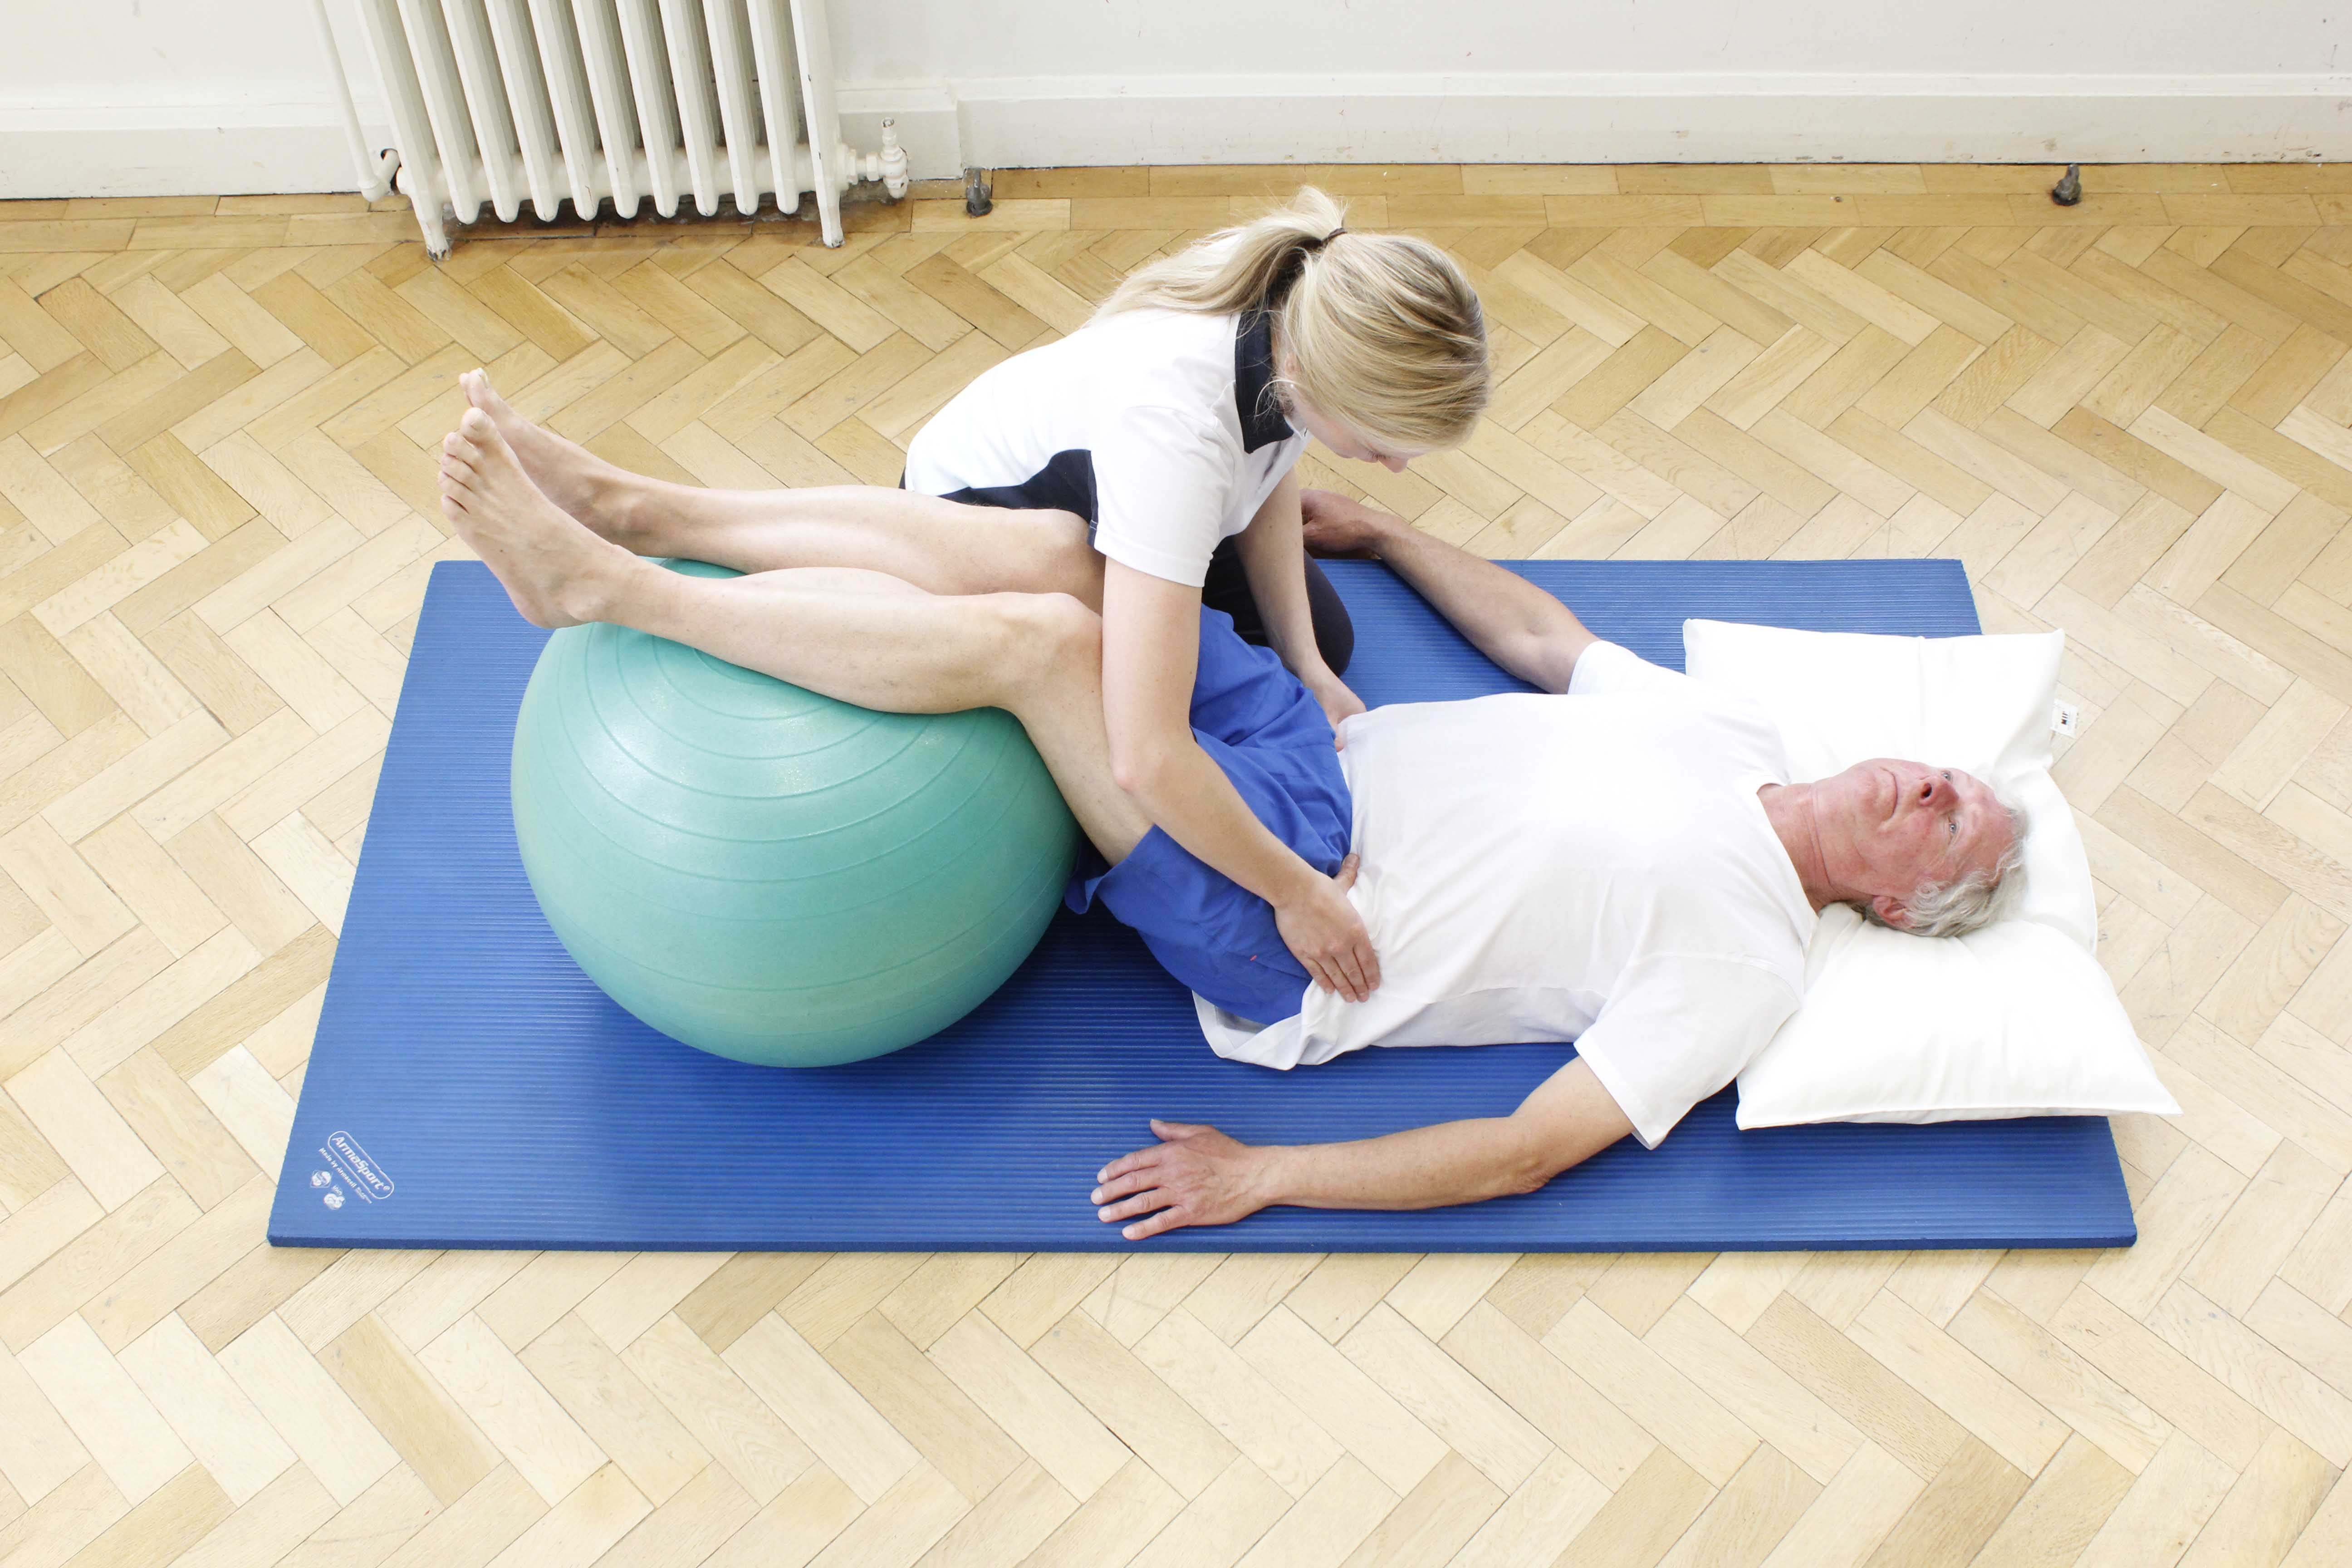 Bridging exercises to improve core stability, strength and posture